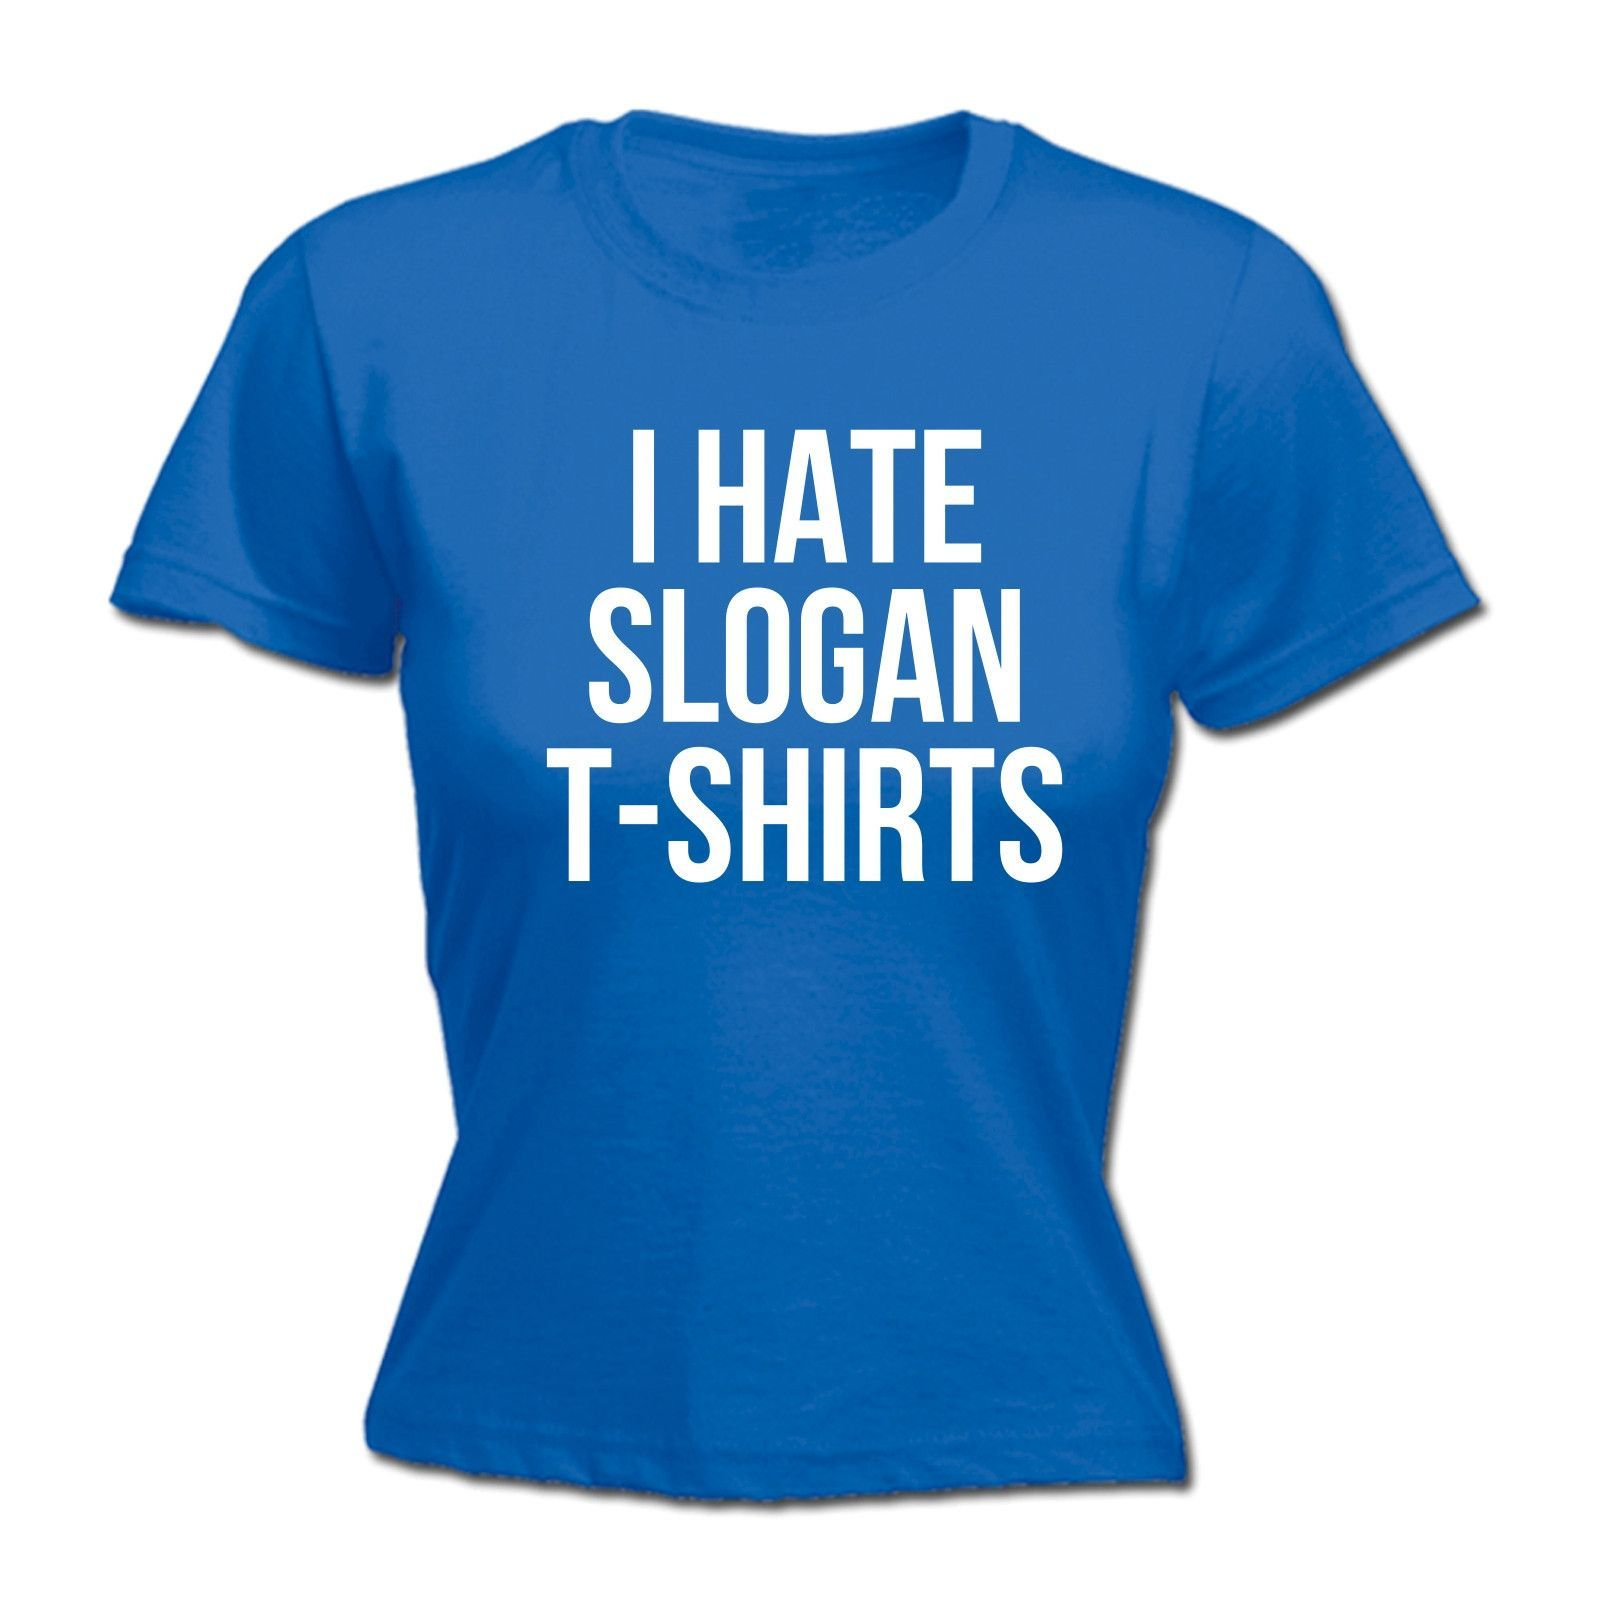 123t USA Women's I Hate Slogan Funny T-Shirts Funny T-Shirt ...